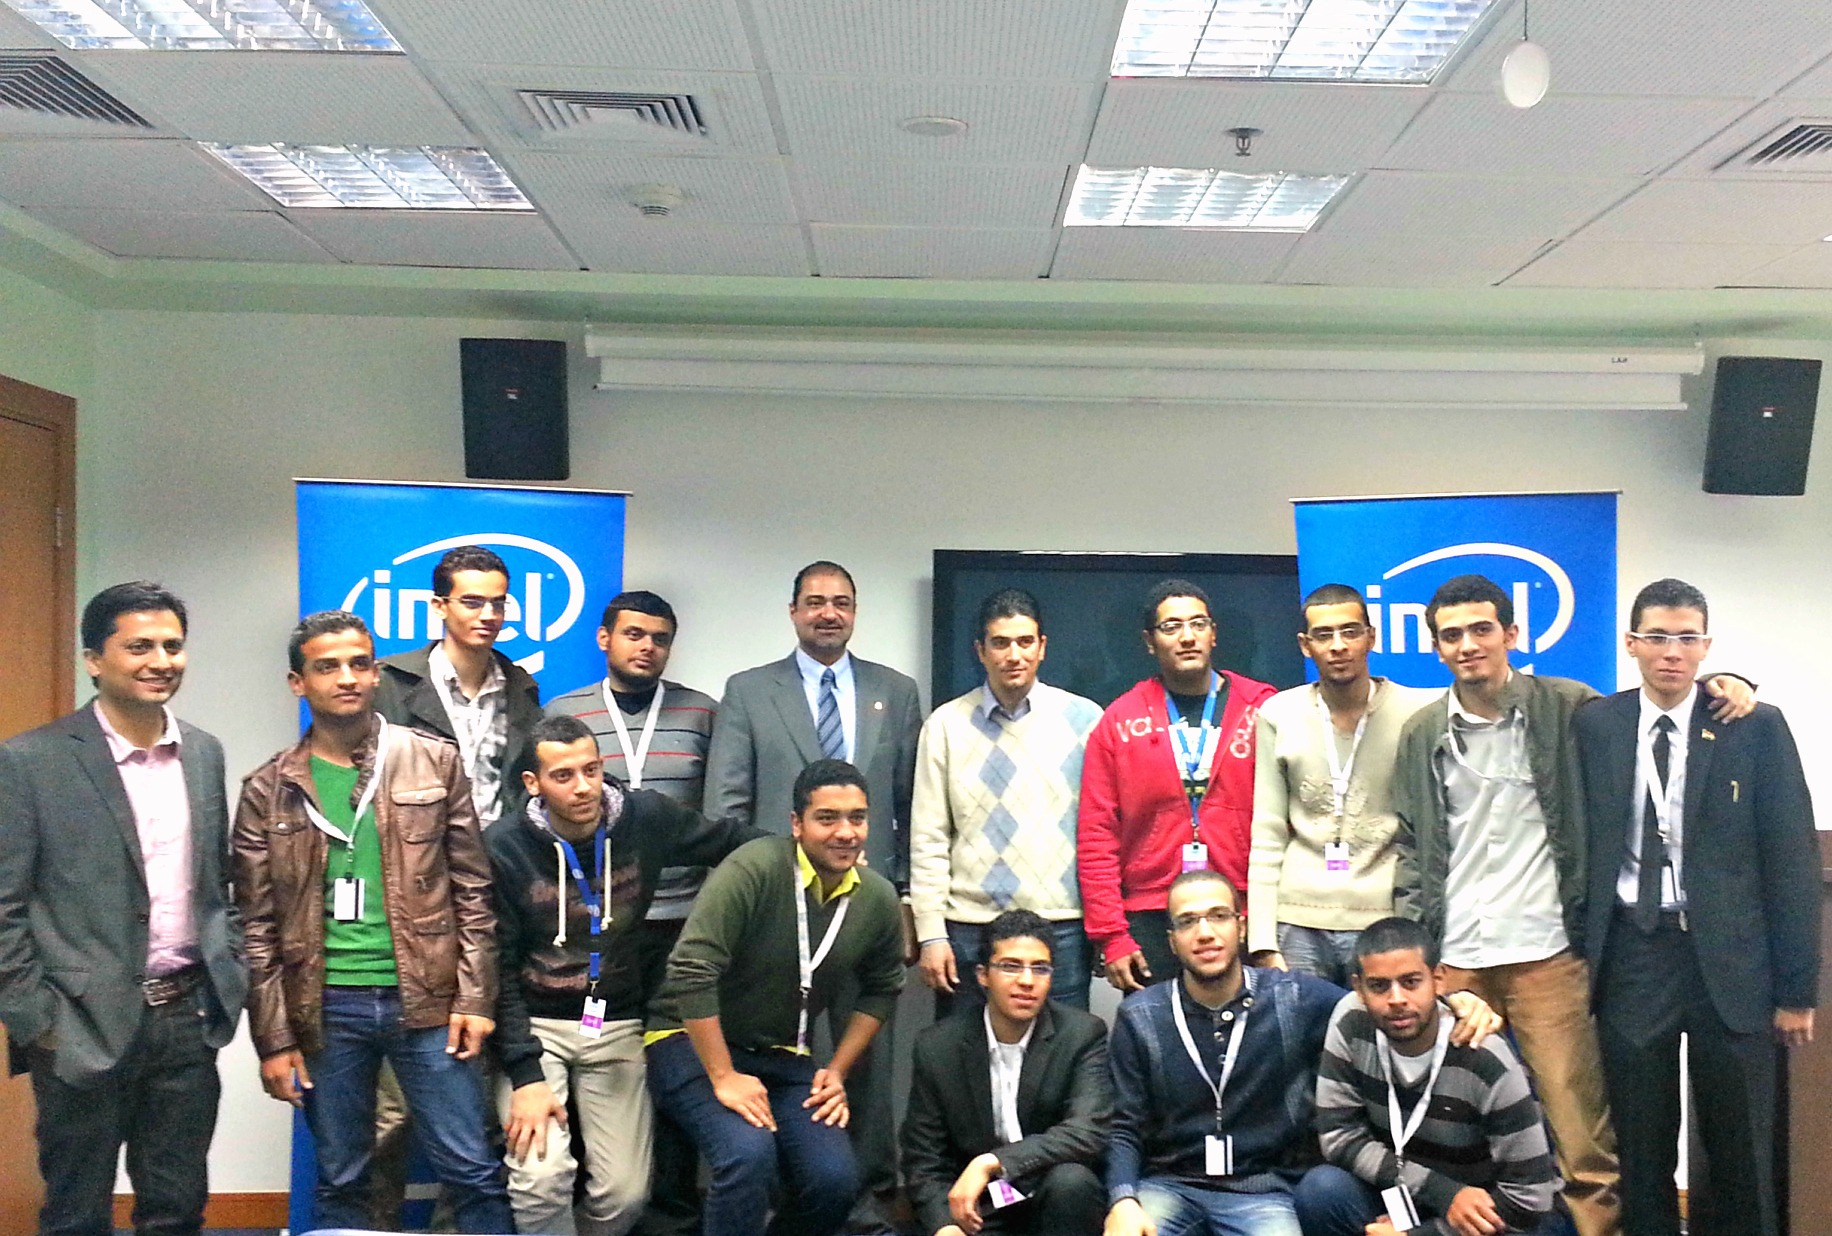 Intel Ideation Camp